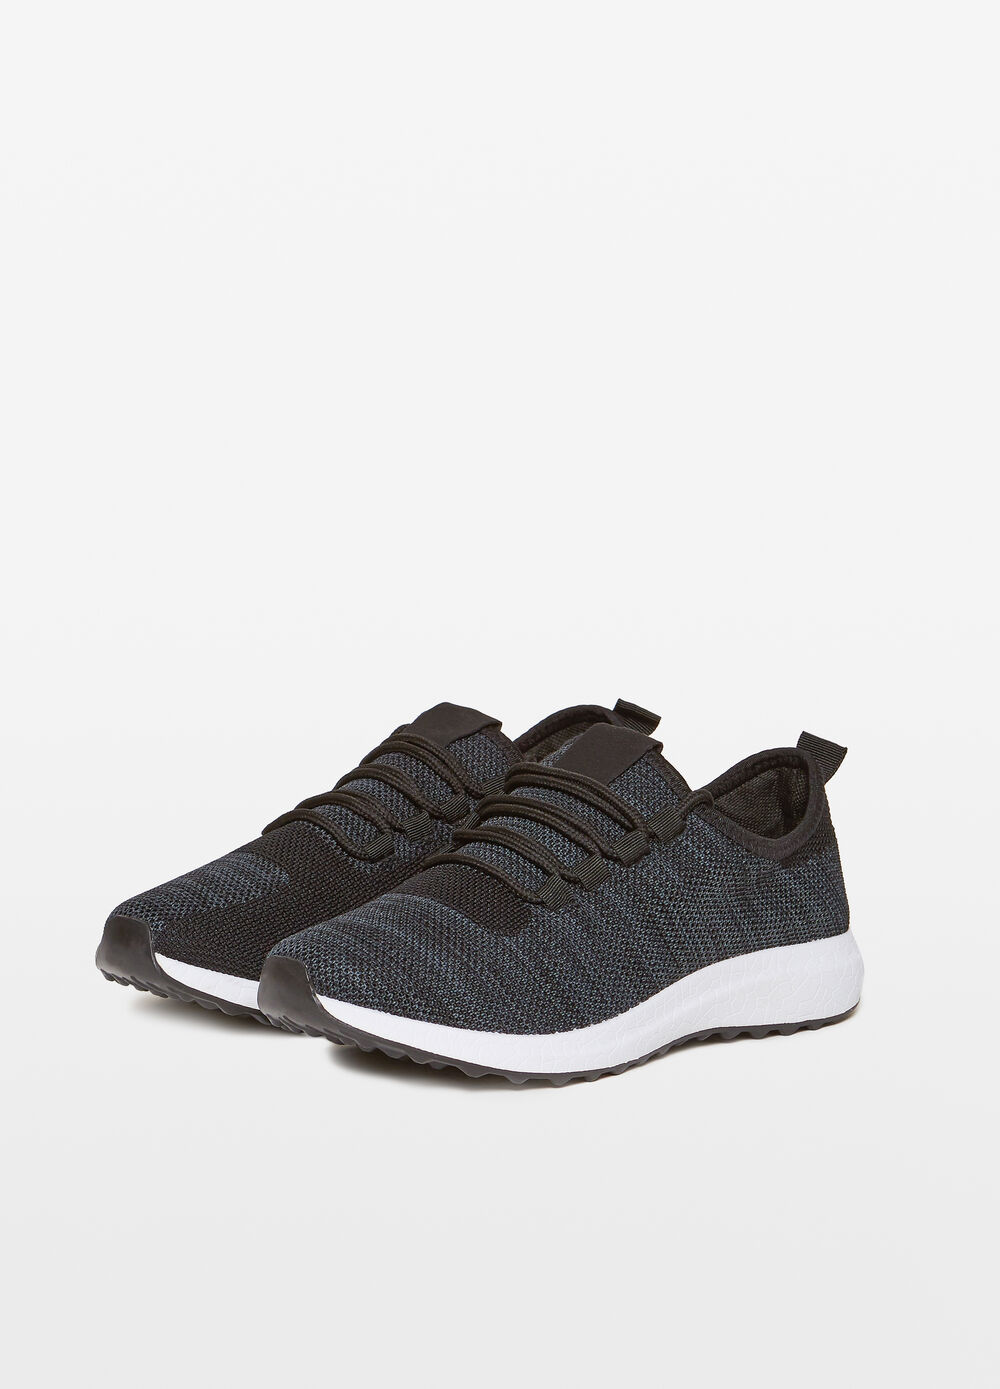 Sneakers with two-tone braided upper